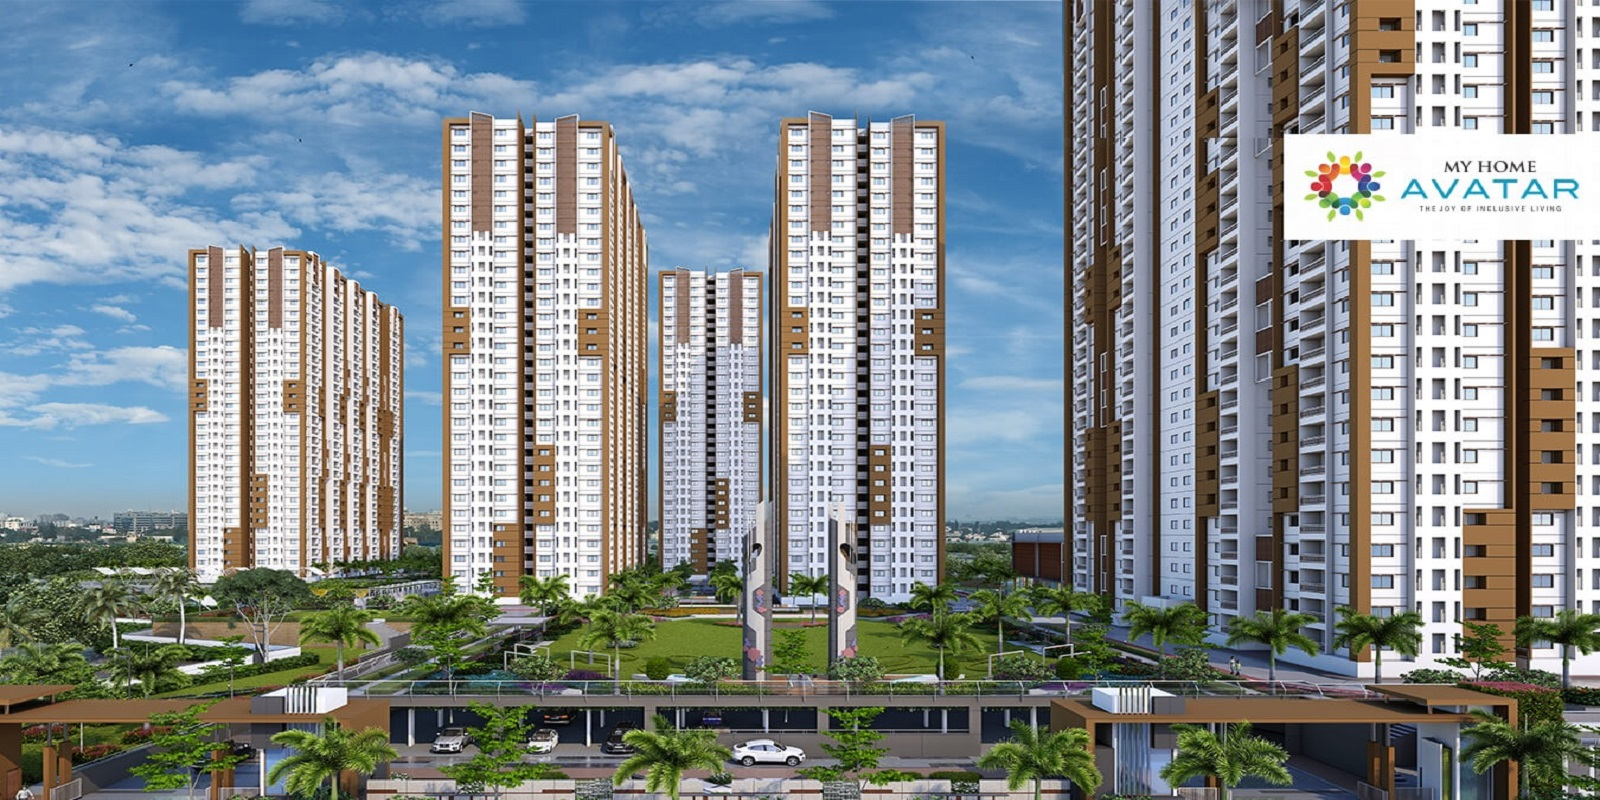 My Home Avatar Price On Request 2 Bhk 3 Bhk Bhk Floor Plans Available In Gachibowli Hyderabad